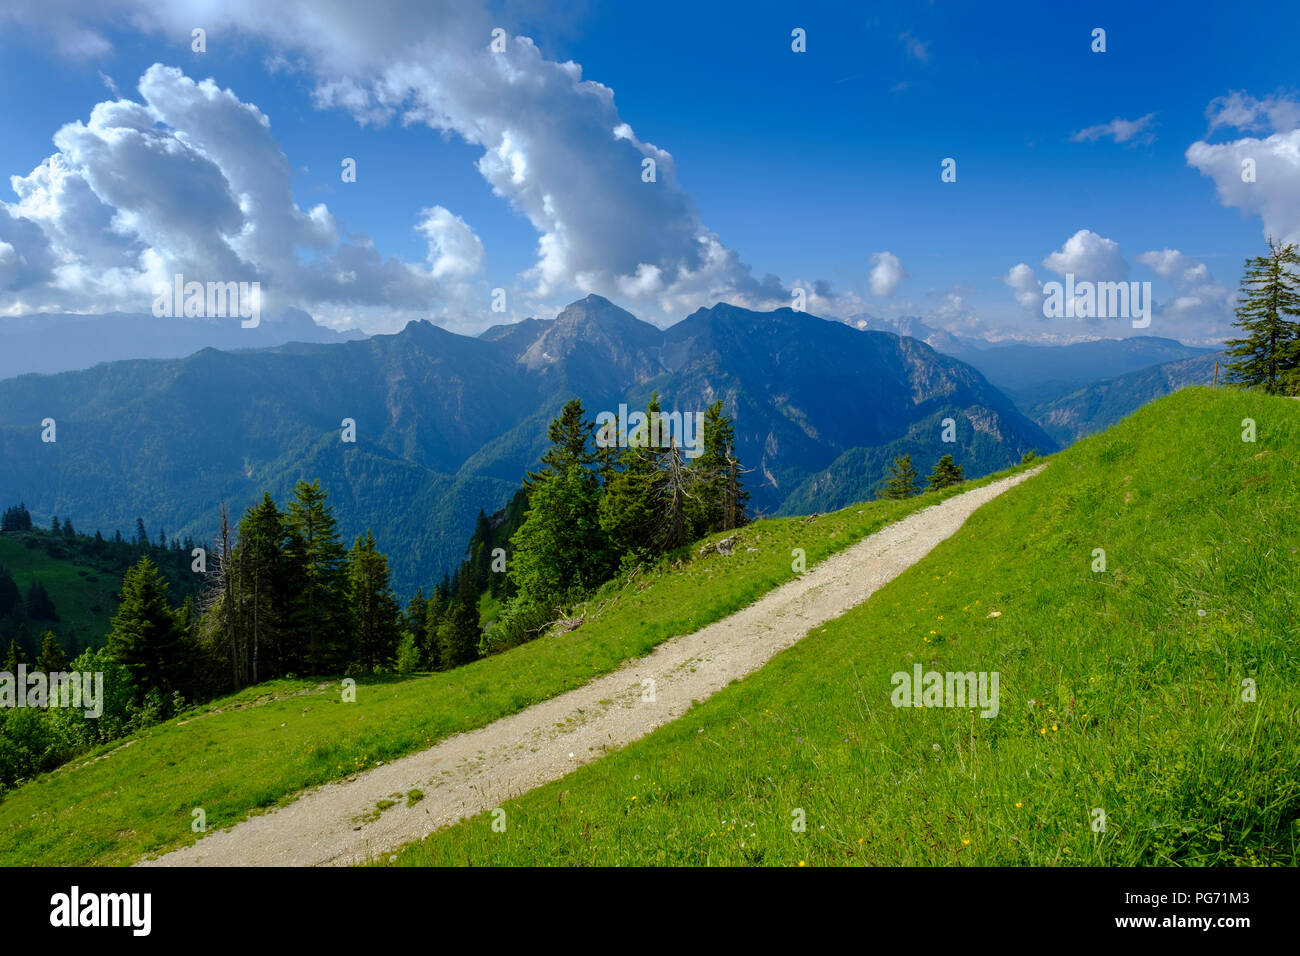 Germany, Bavaria, Upper Bavaria, Ruhpolding, Chiemgau, View from Rauschberg to Sonntagshorn - Stock Image